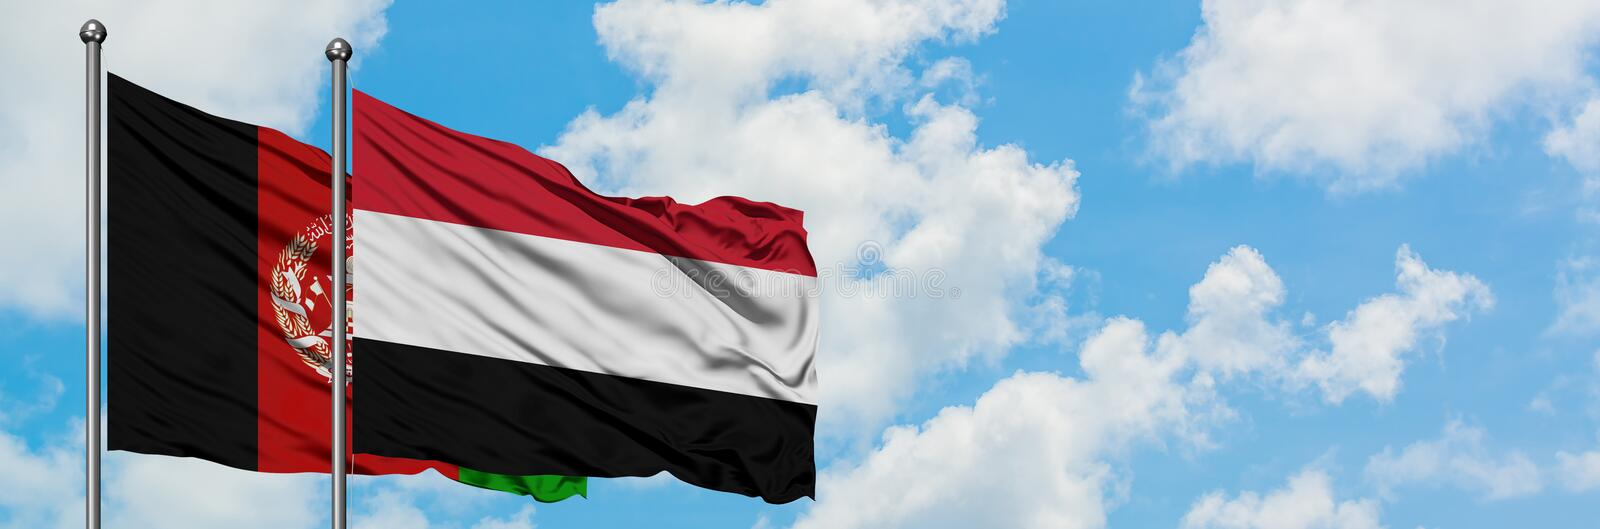 Afghanistan and Yemen flag waving in the wind against white cloudy blue sky together. Diplomacy concept, international relations.  stock images